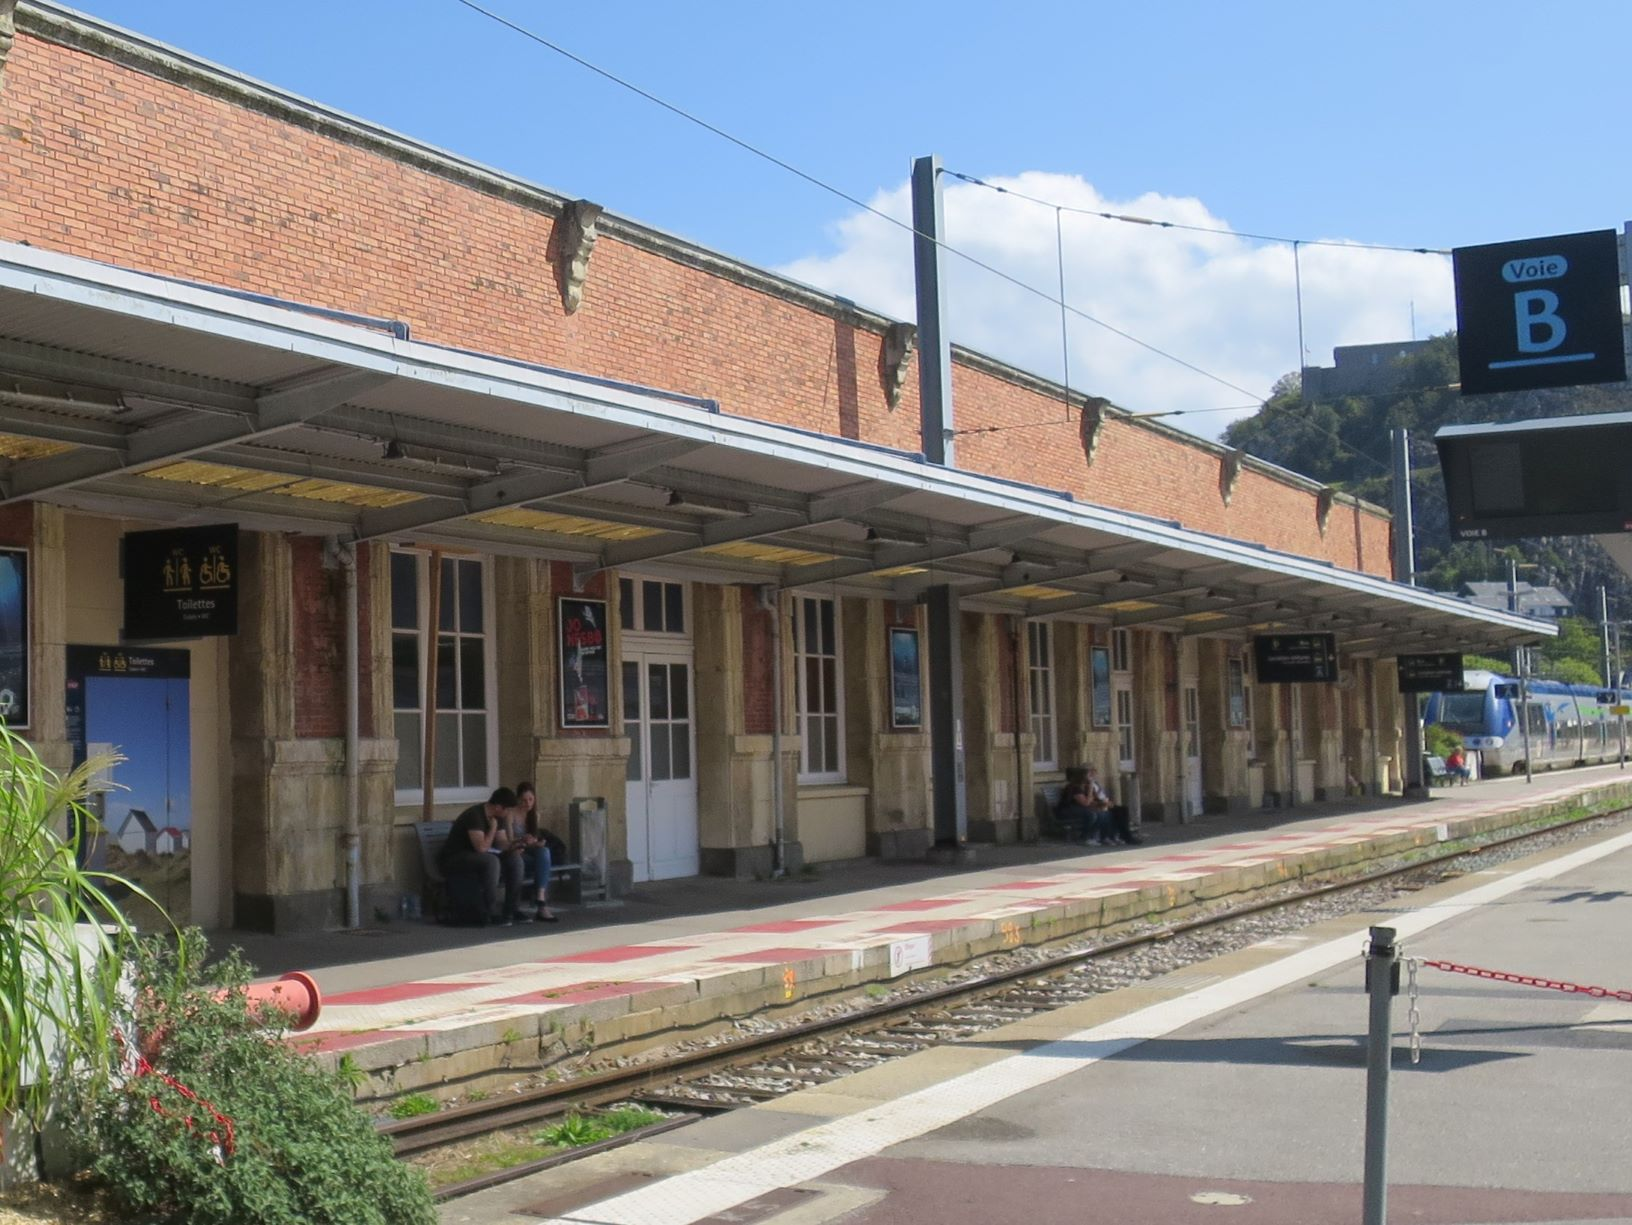 Cherbourg Station